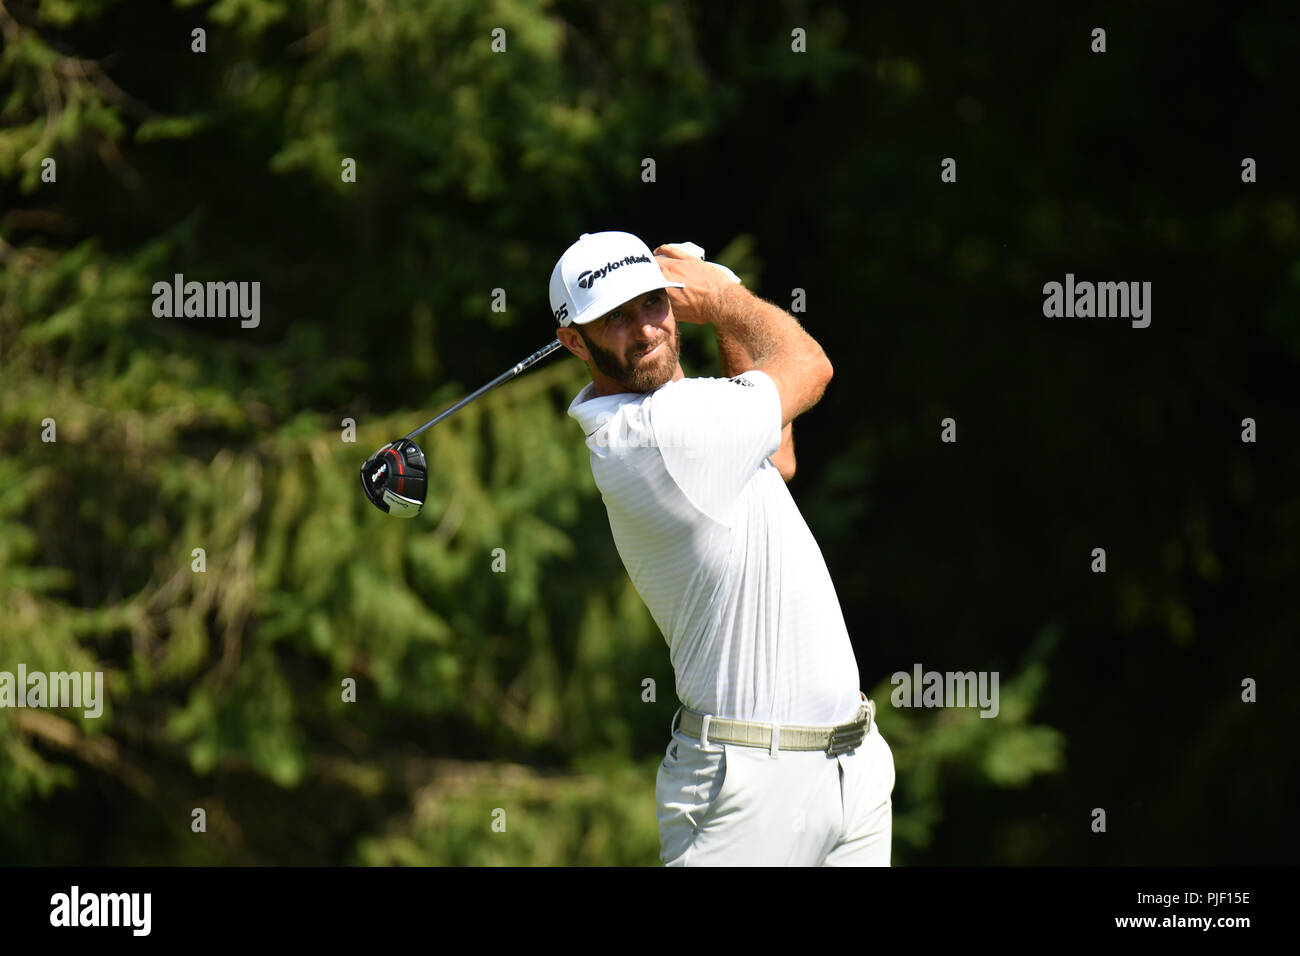 Newtown Square, Pennsylvania, USA. 6th September, 2018. Thursday September 6, 2018: Dustin Johnson watches his tee shot on the 4th hole during the first round of the BMW Championship at Aronimink Golf Course in Newtown Square, Pennsylvania. Gregory Vasil/CSM Credit: Cal Sport Media/Alamy Live News - Stock Image